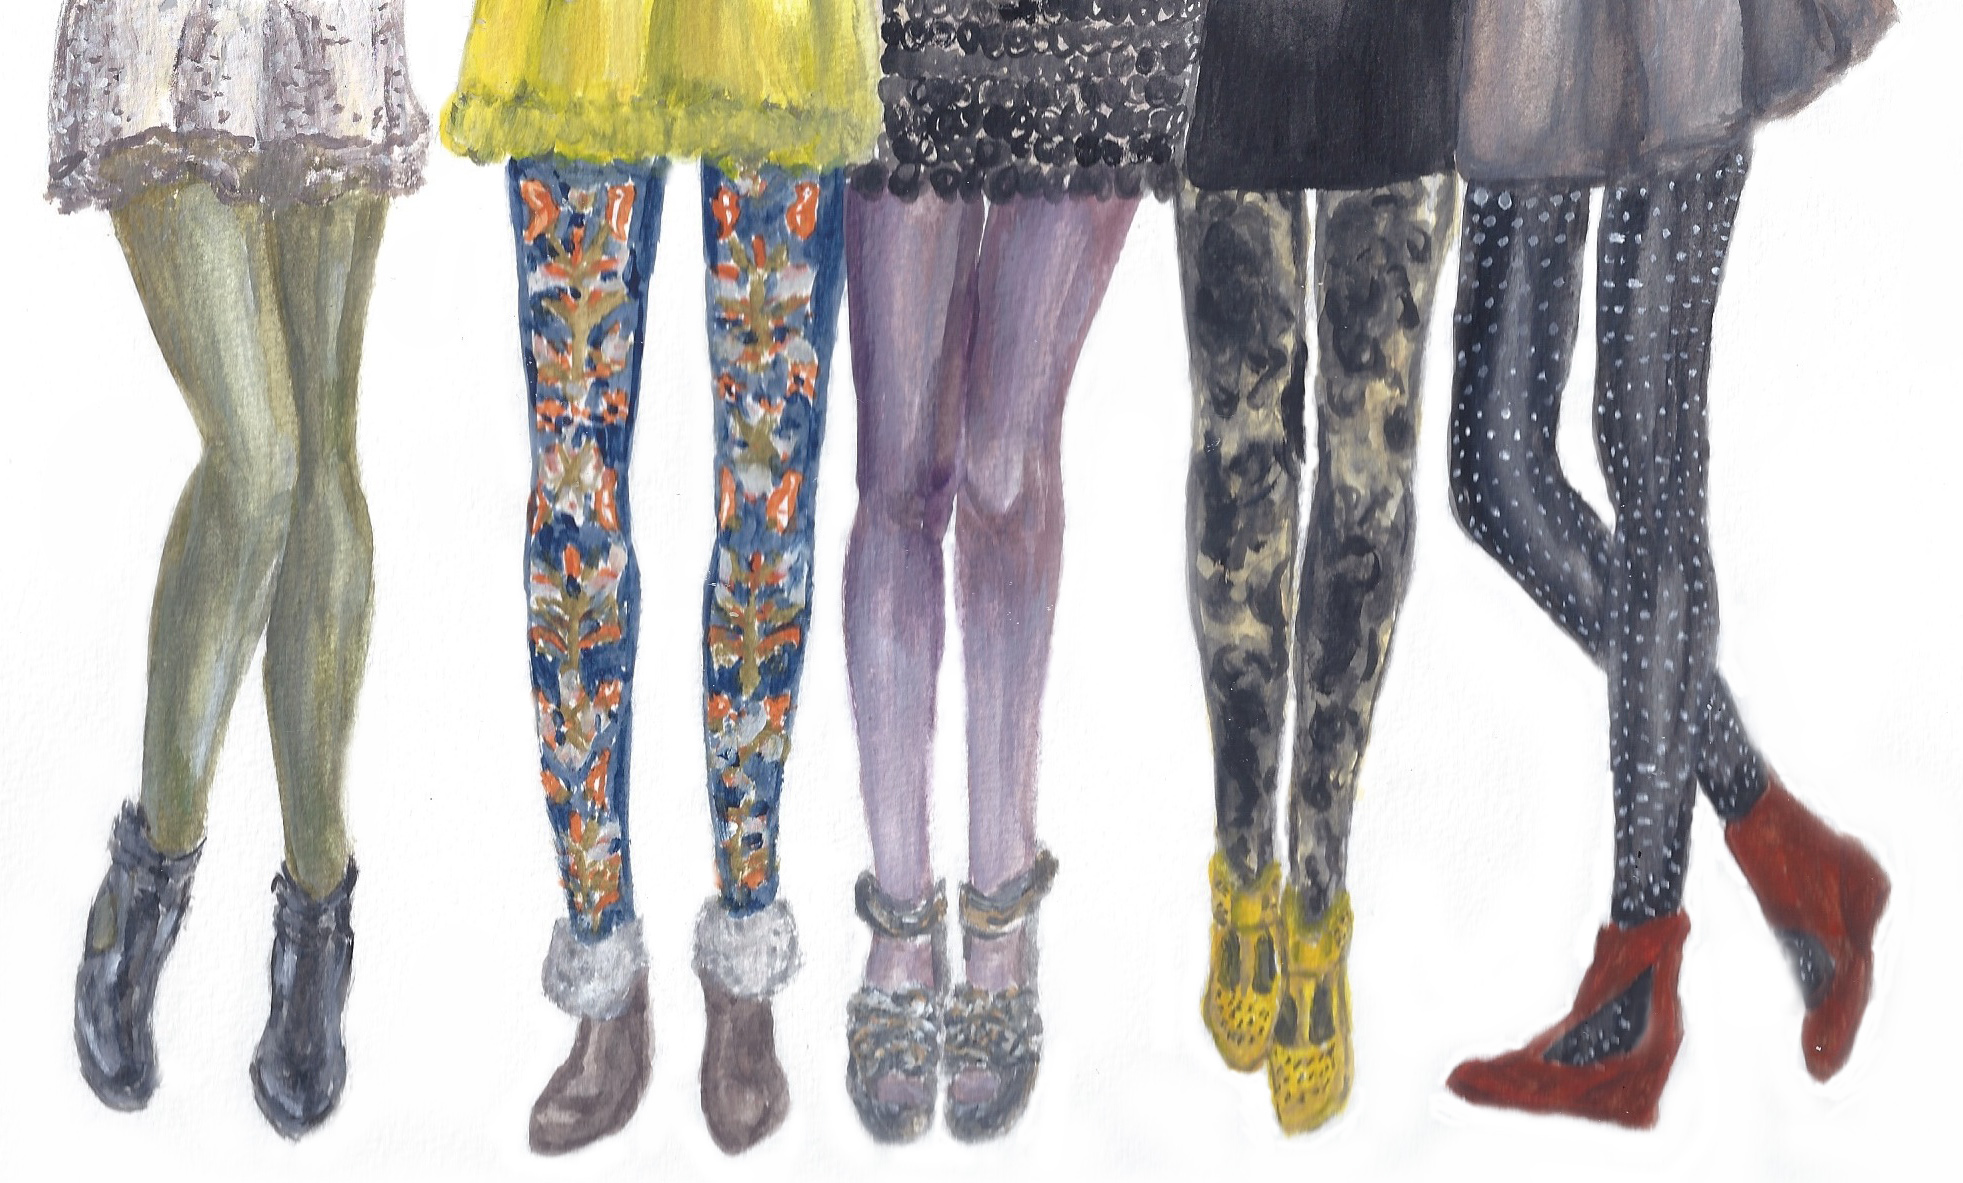 Winter Glam for Your Gams: Five Pairs of Cold-Weather Tights from Anthropologie